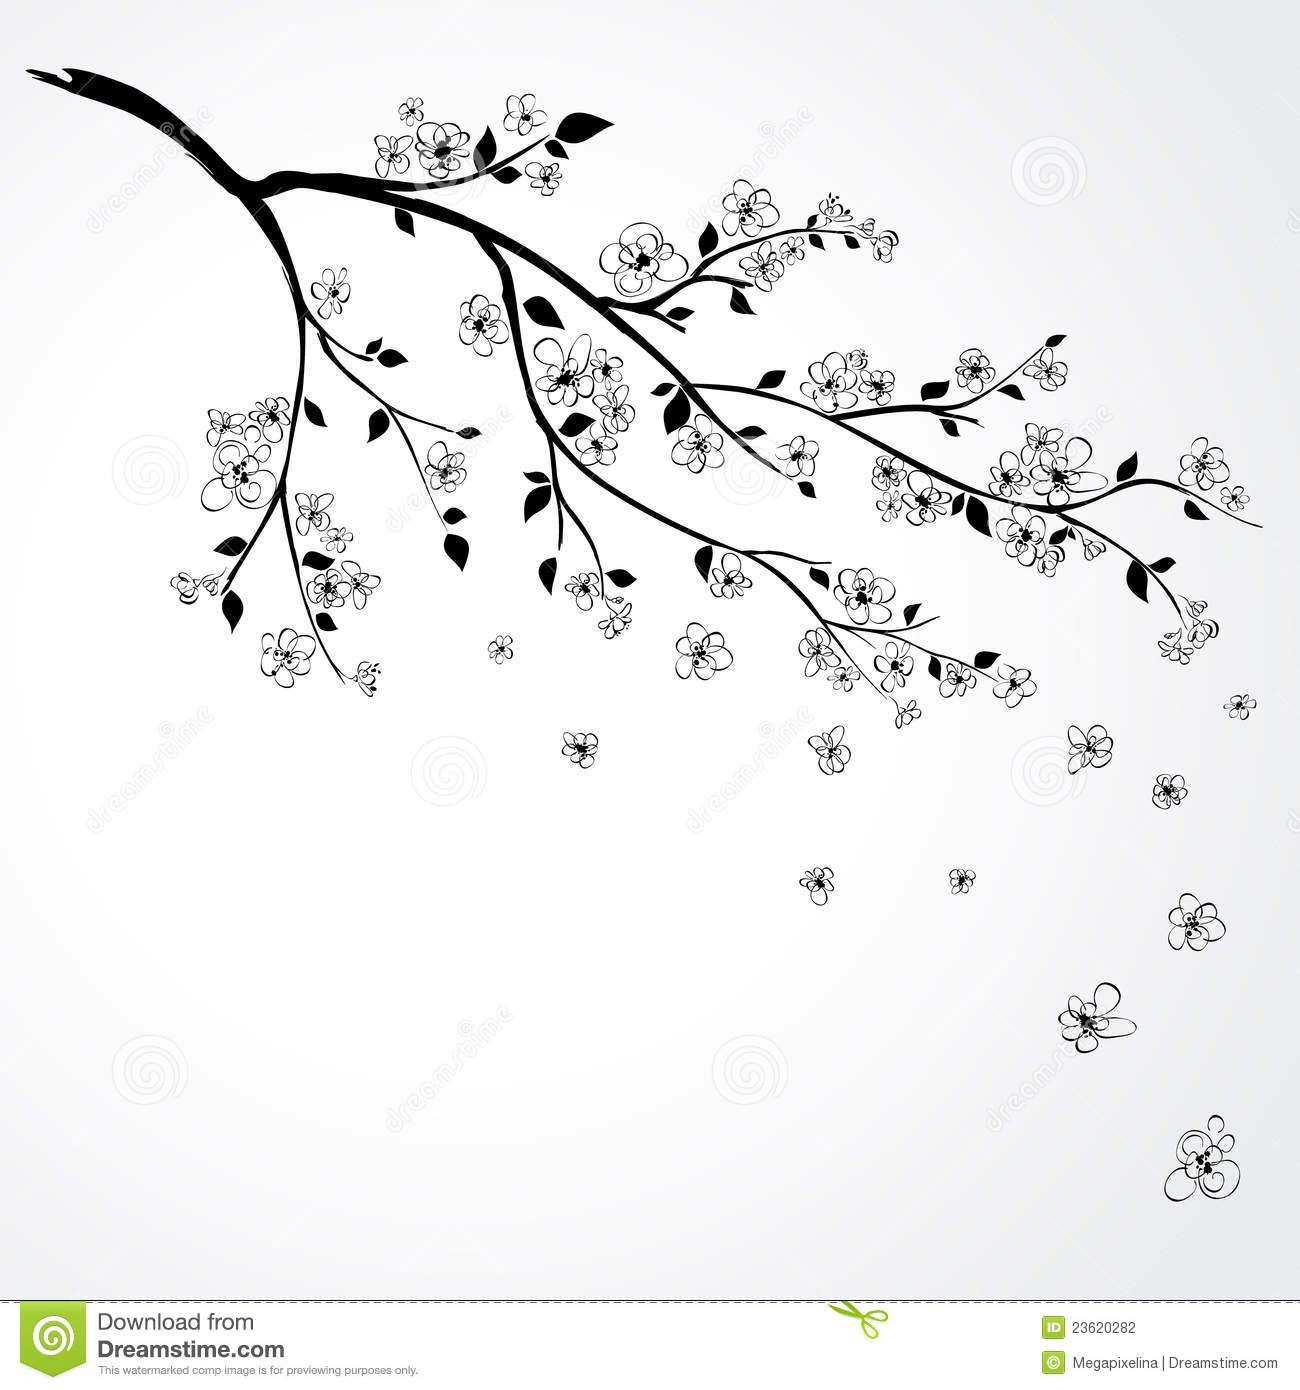 Diagram The Parts Of Cherry Blossom Tree Airmar Transducer Wiring Diagrams Flower Branch Drawing